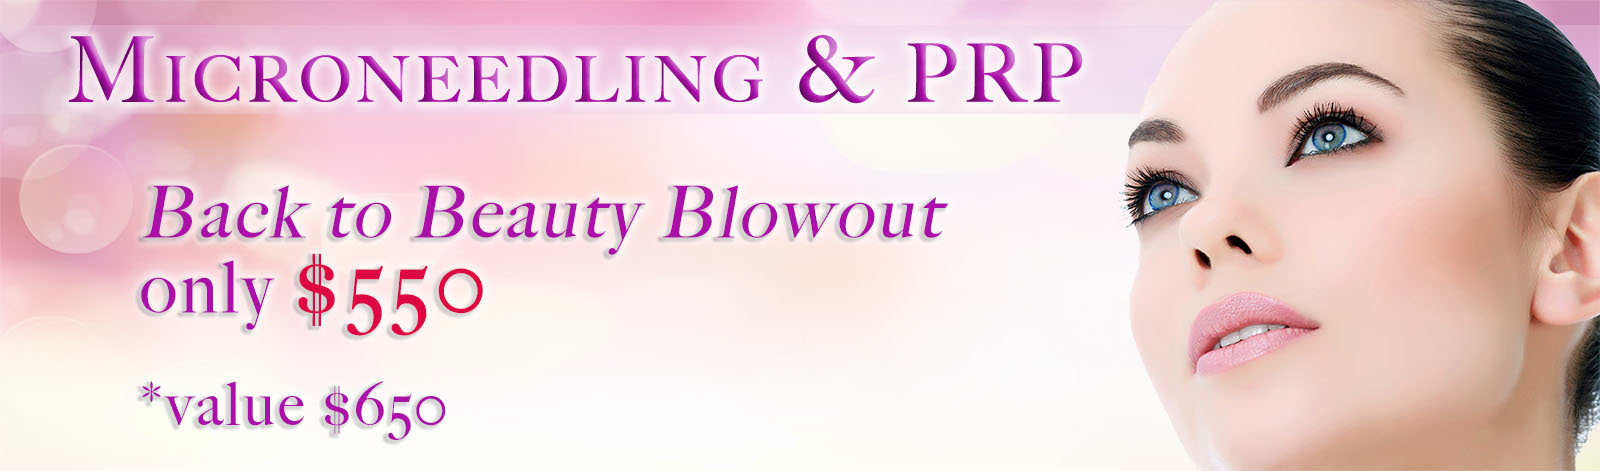 prp and micro needling